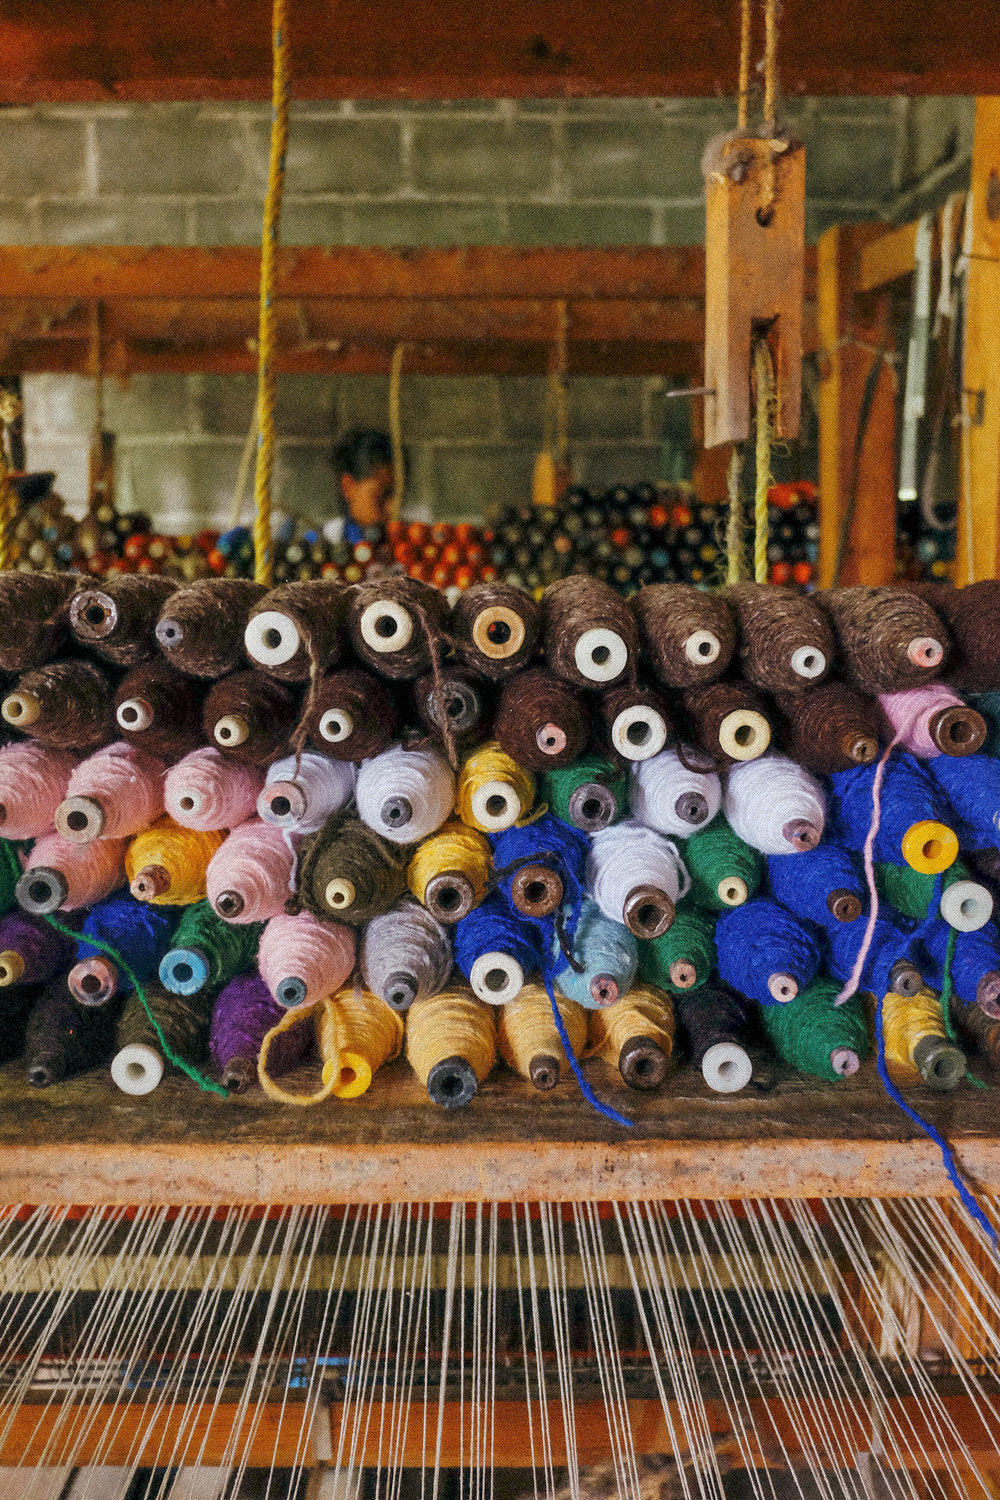 Spools for weaving